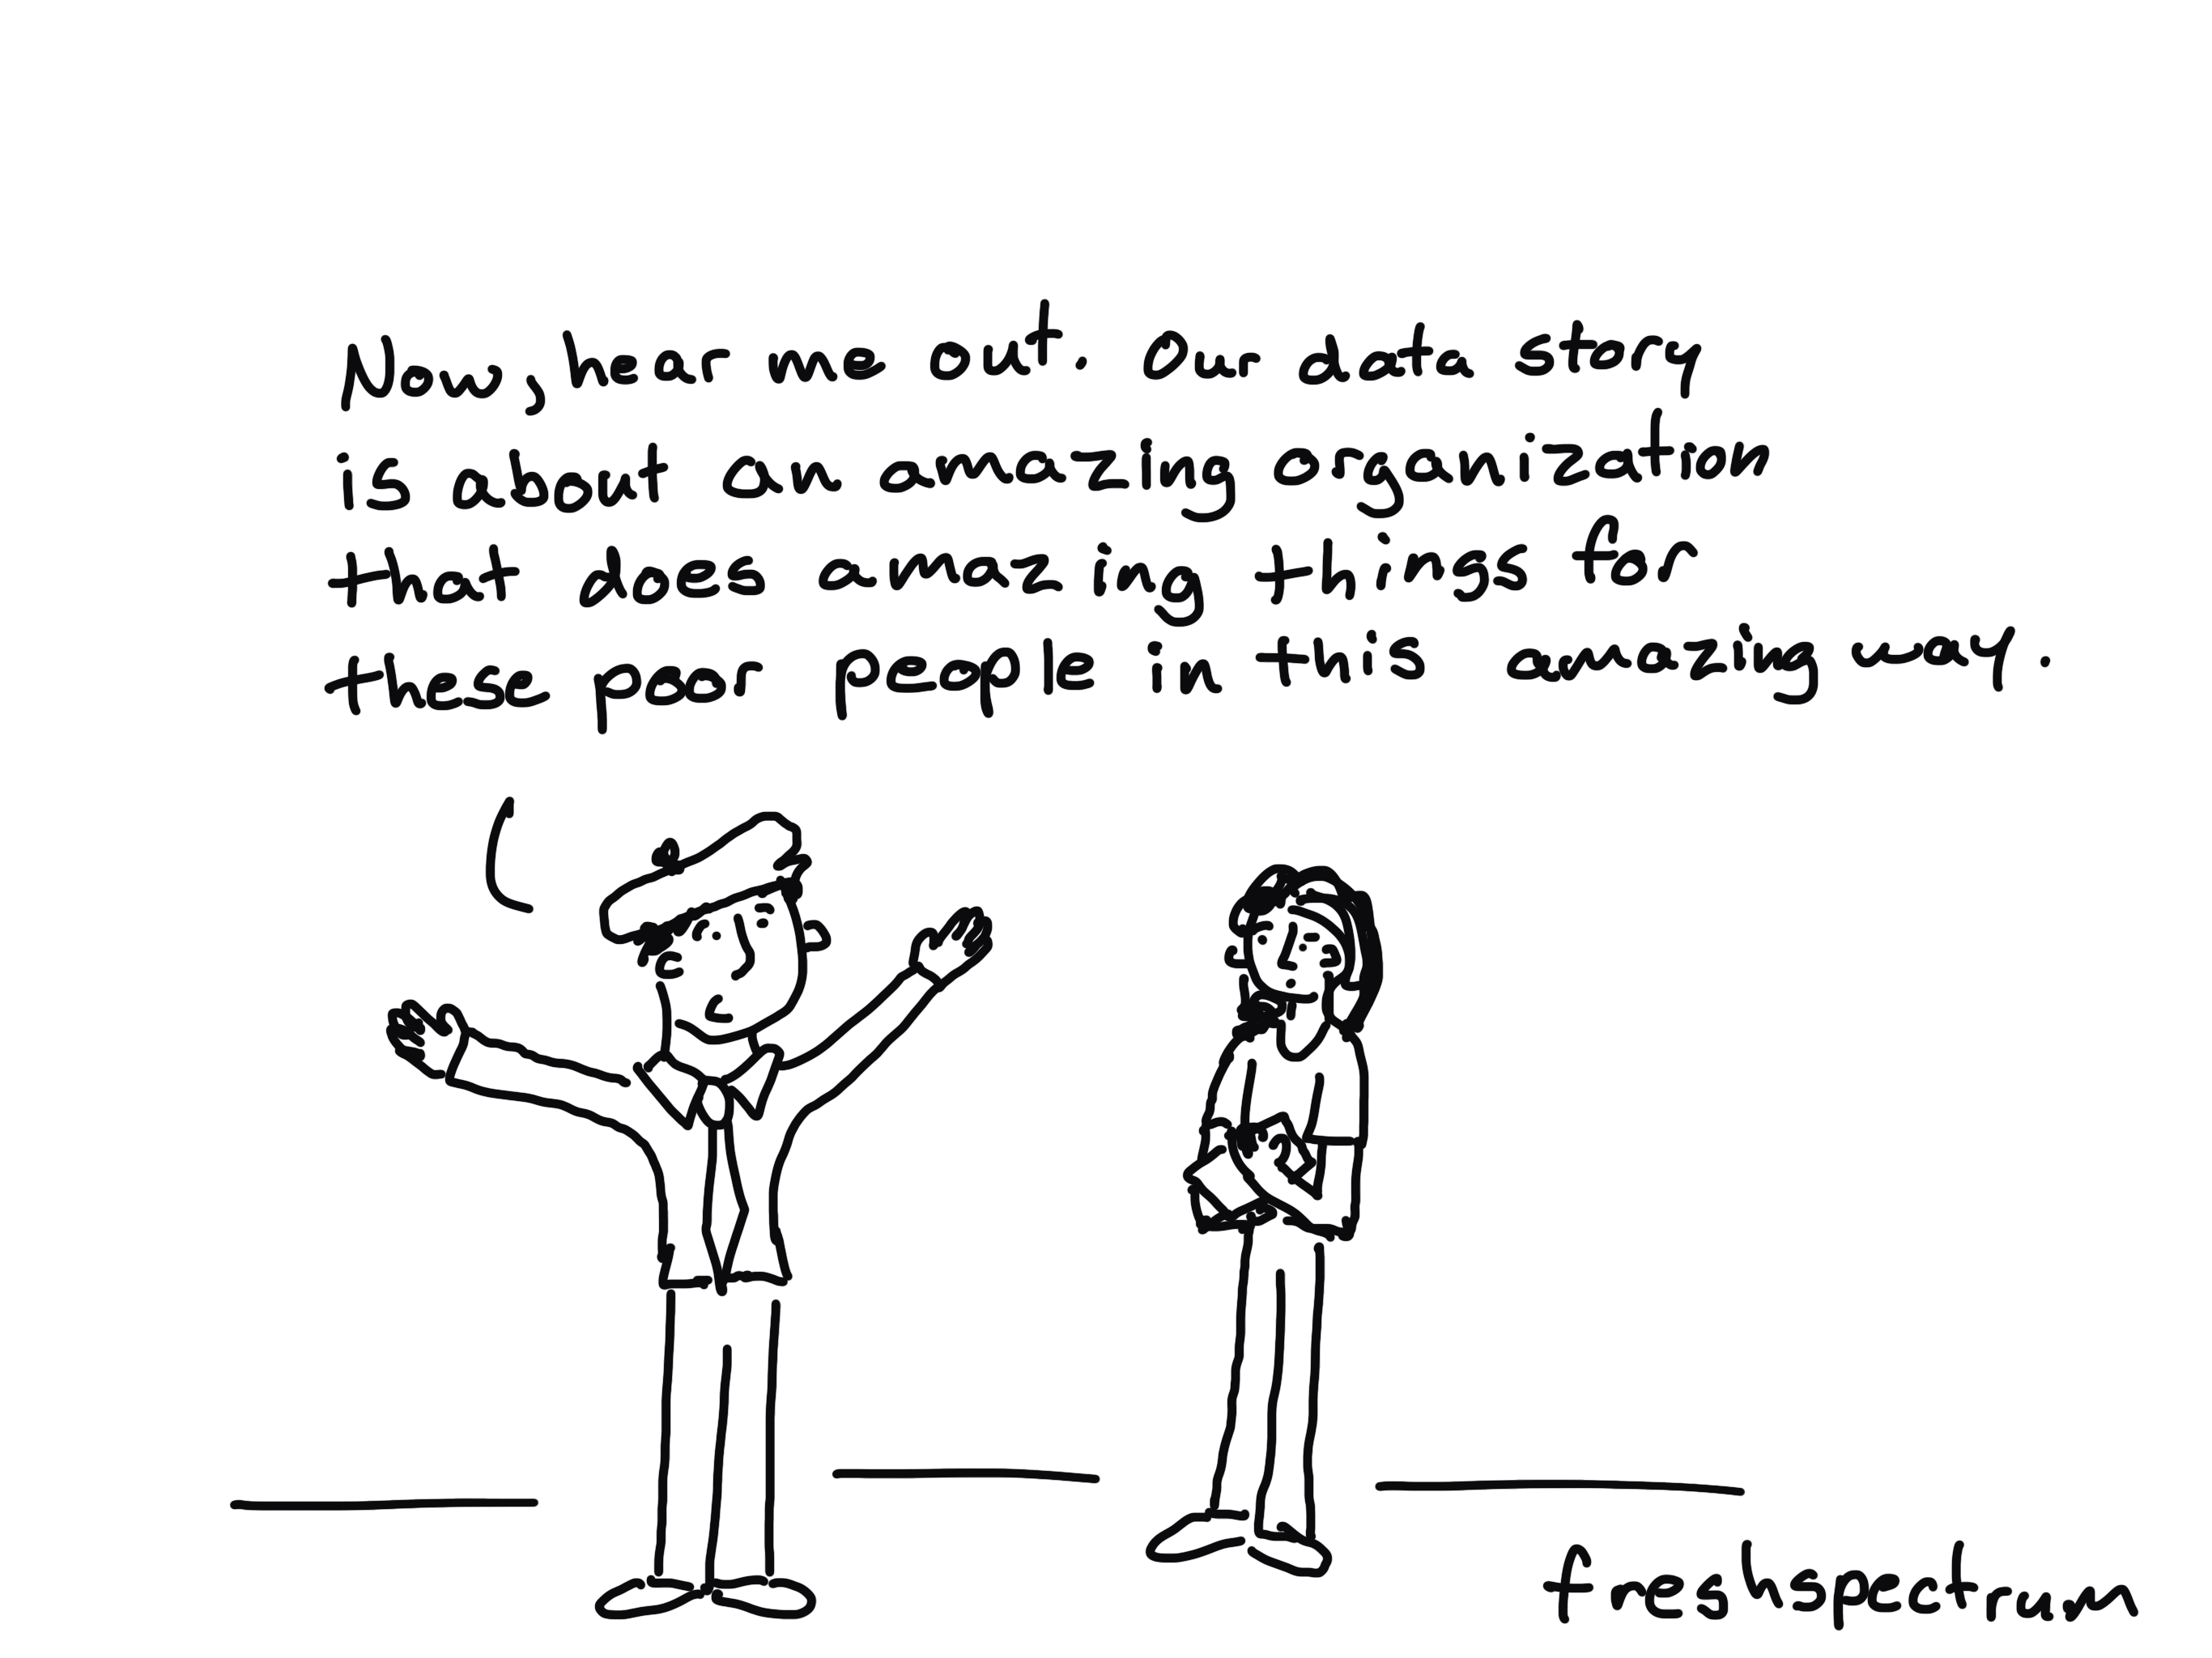 Telling good stories, with or without data.